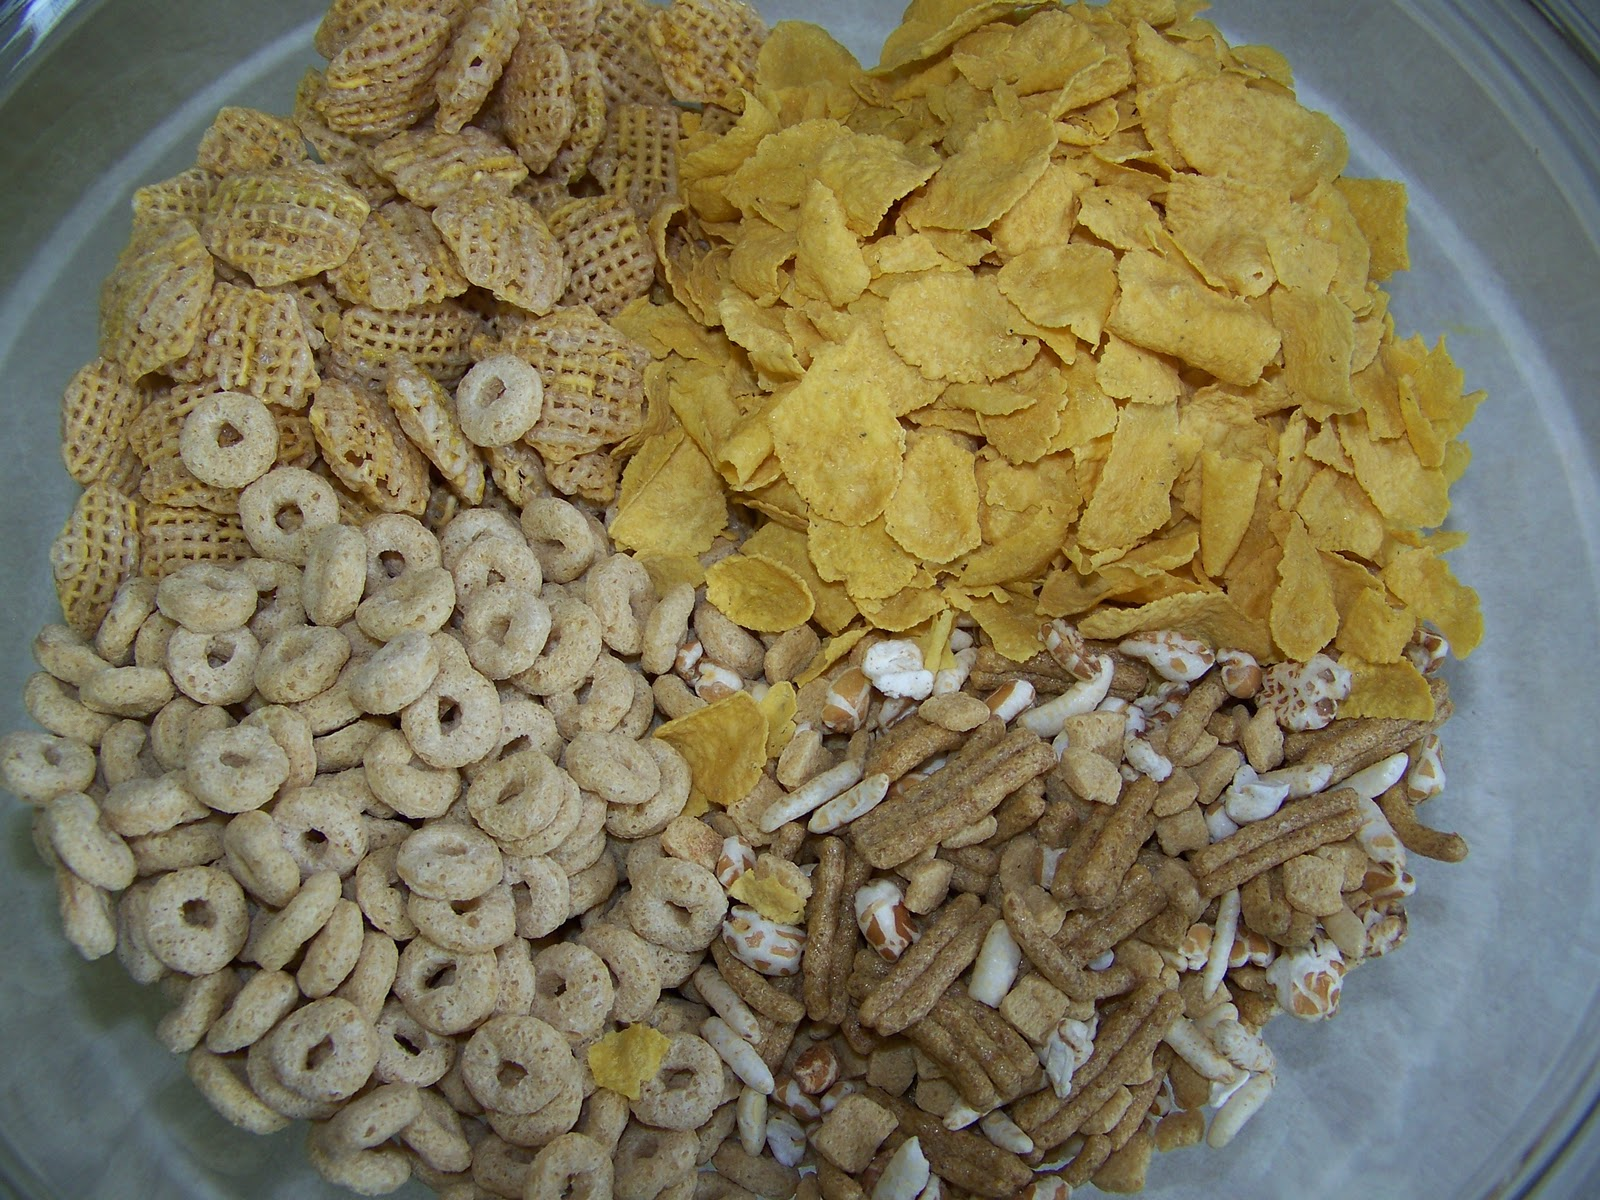 Kitchen simmer spicy indian snack mix this is a great cost effective price per ounce way of recreating that fun and spicy snack mix without all the fat and calories ccuart Image collections